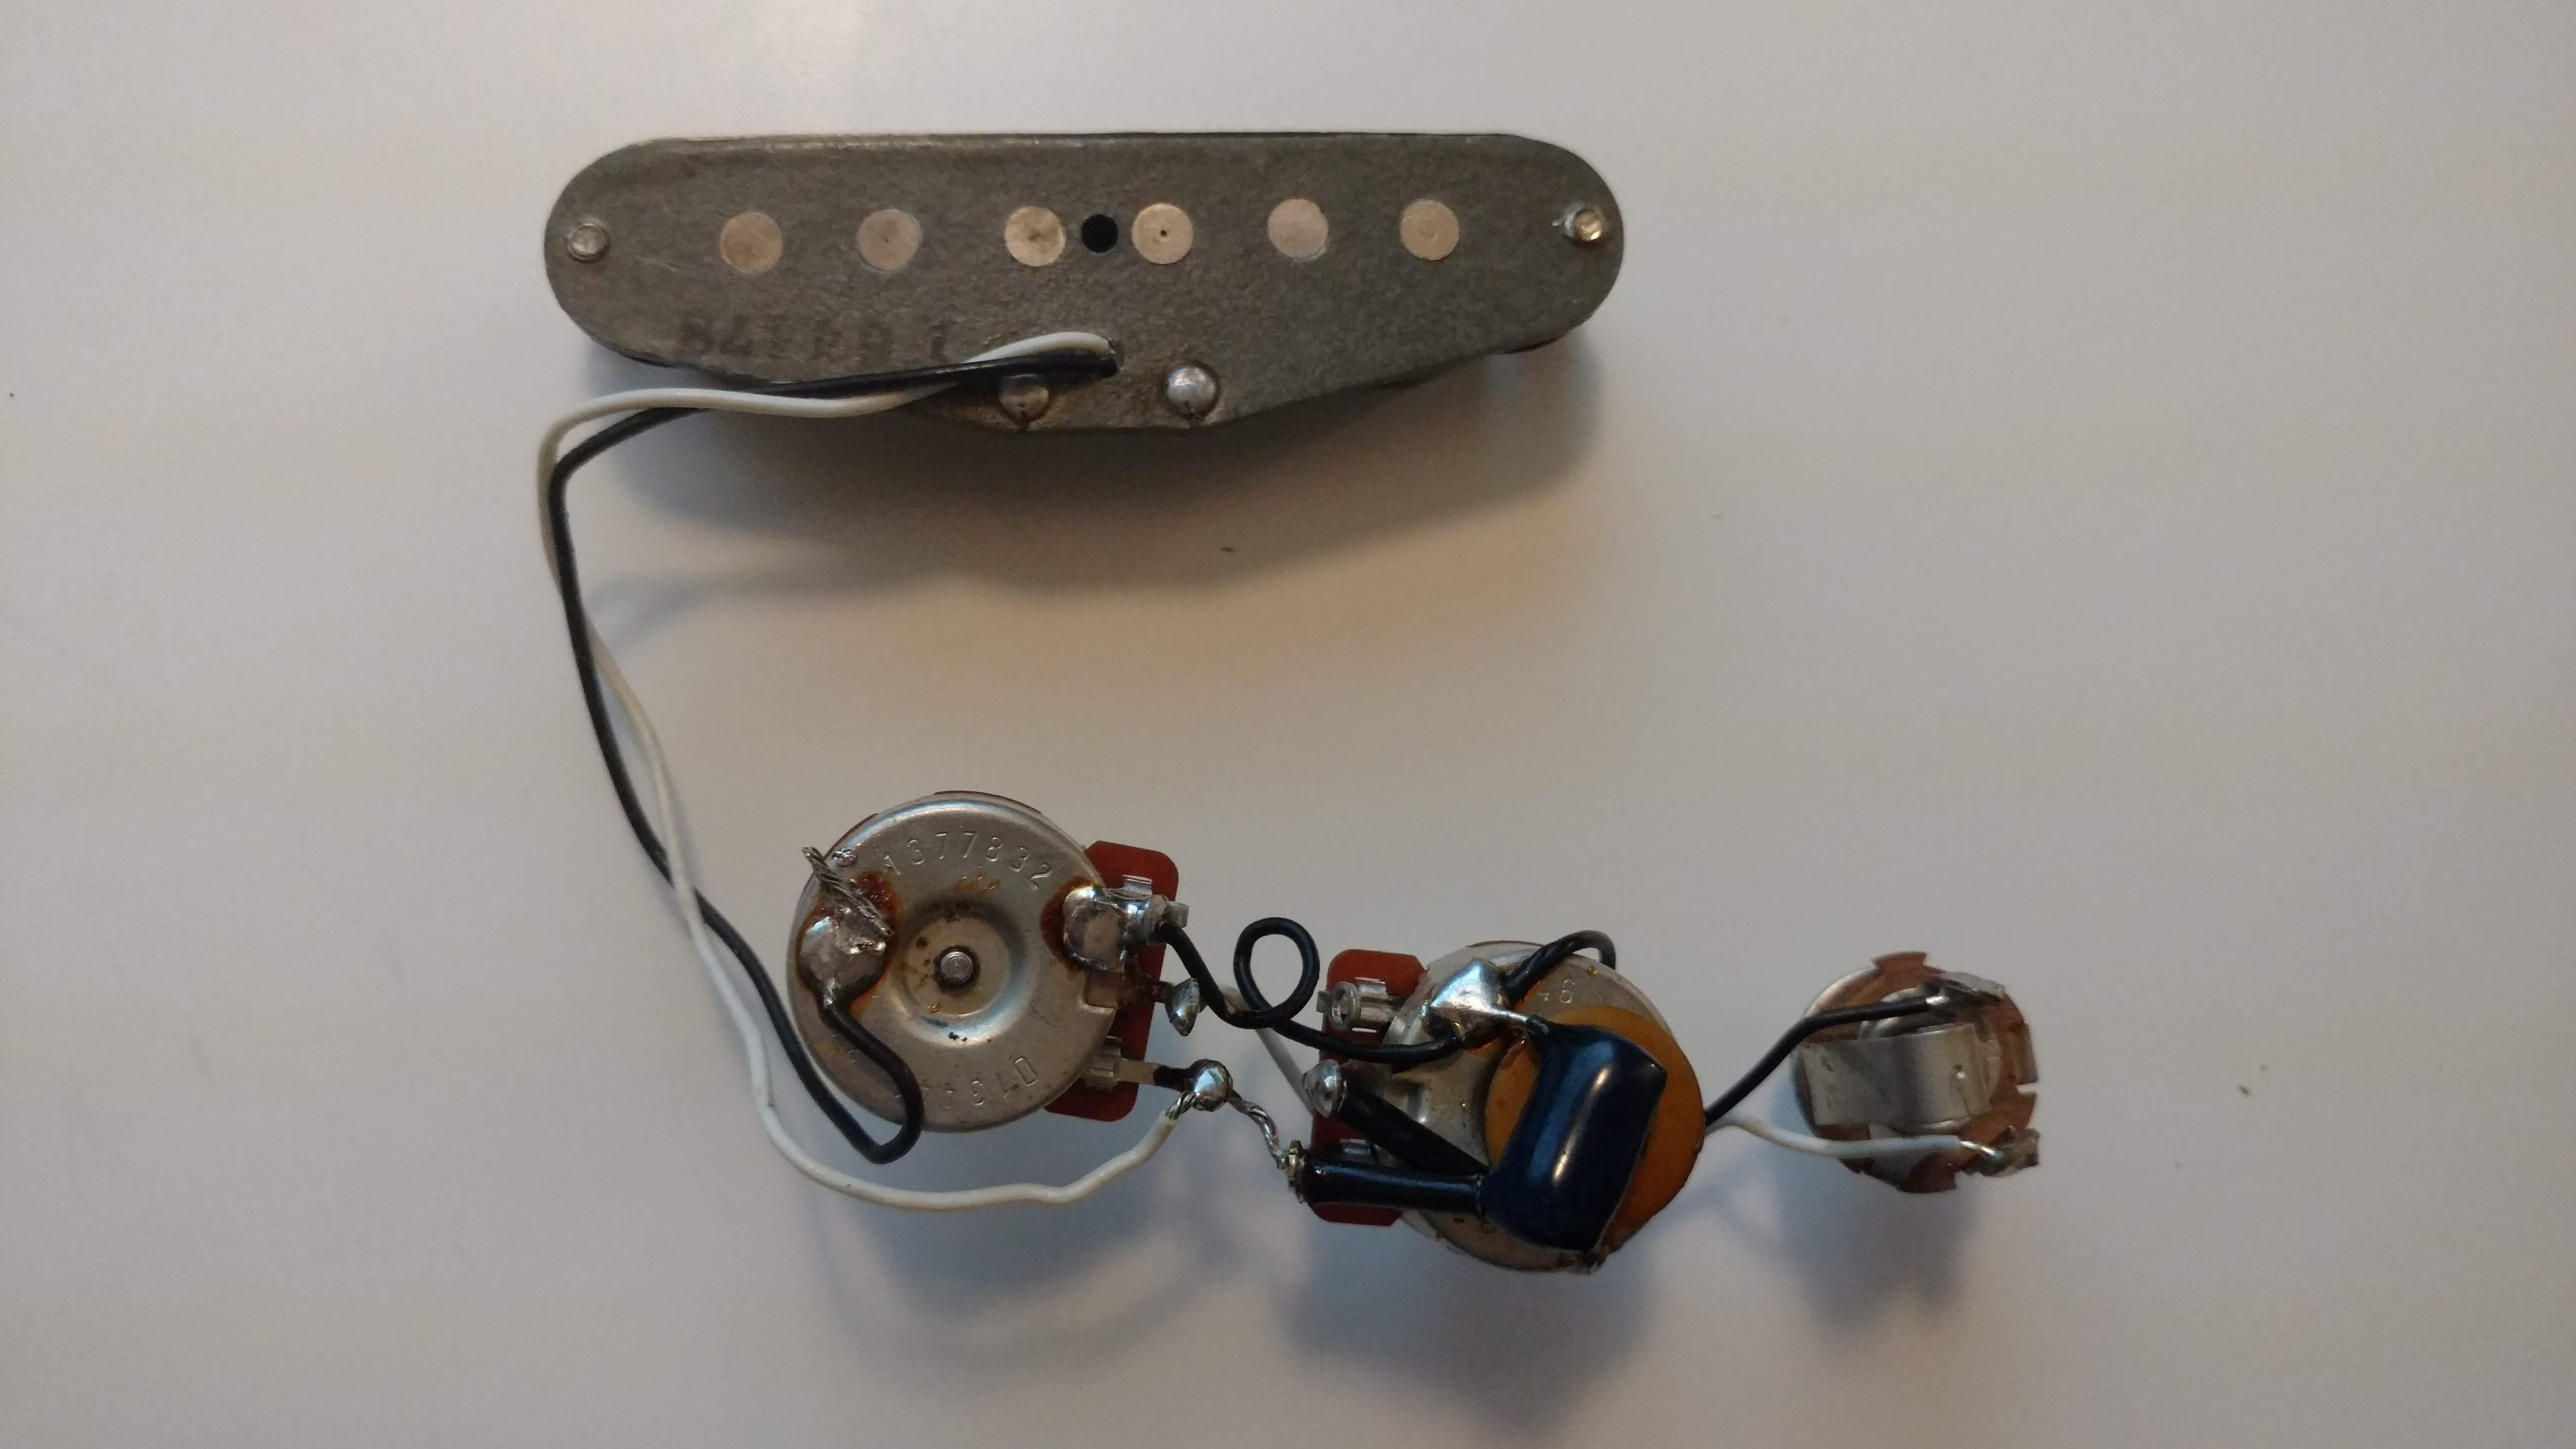 Sold 1978 Fender Musicmaster Pickup And Wiring Harness American Stratocaster Img 20160814 032134318